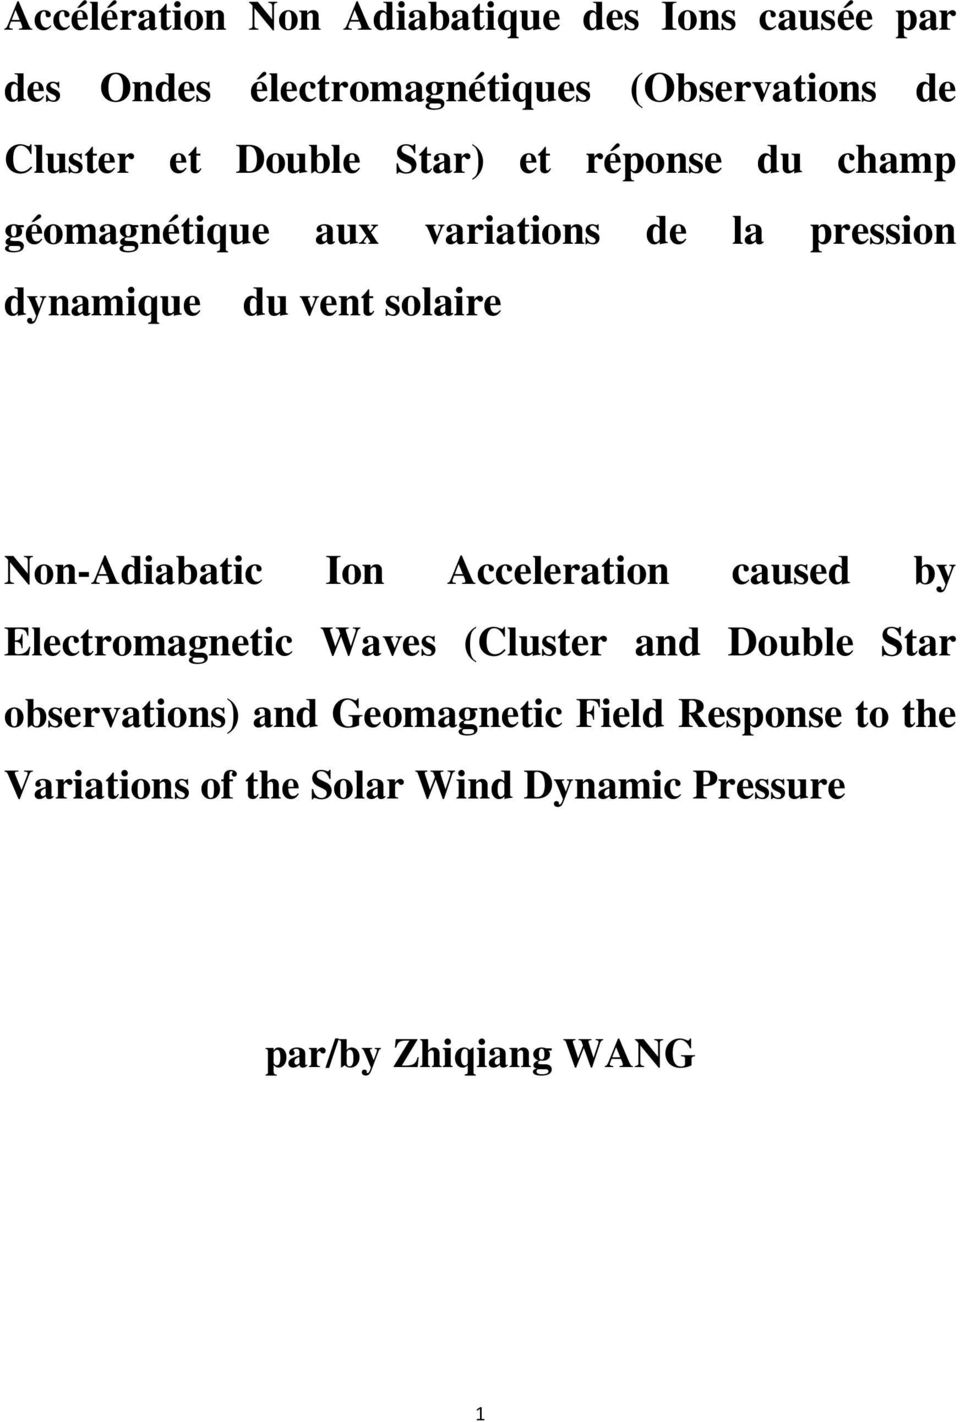 solaire Non-Adiabatic Ion Acceleration caused by Electromagnetic Waves (Cluster and Double Star